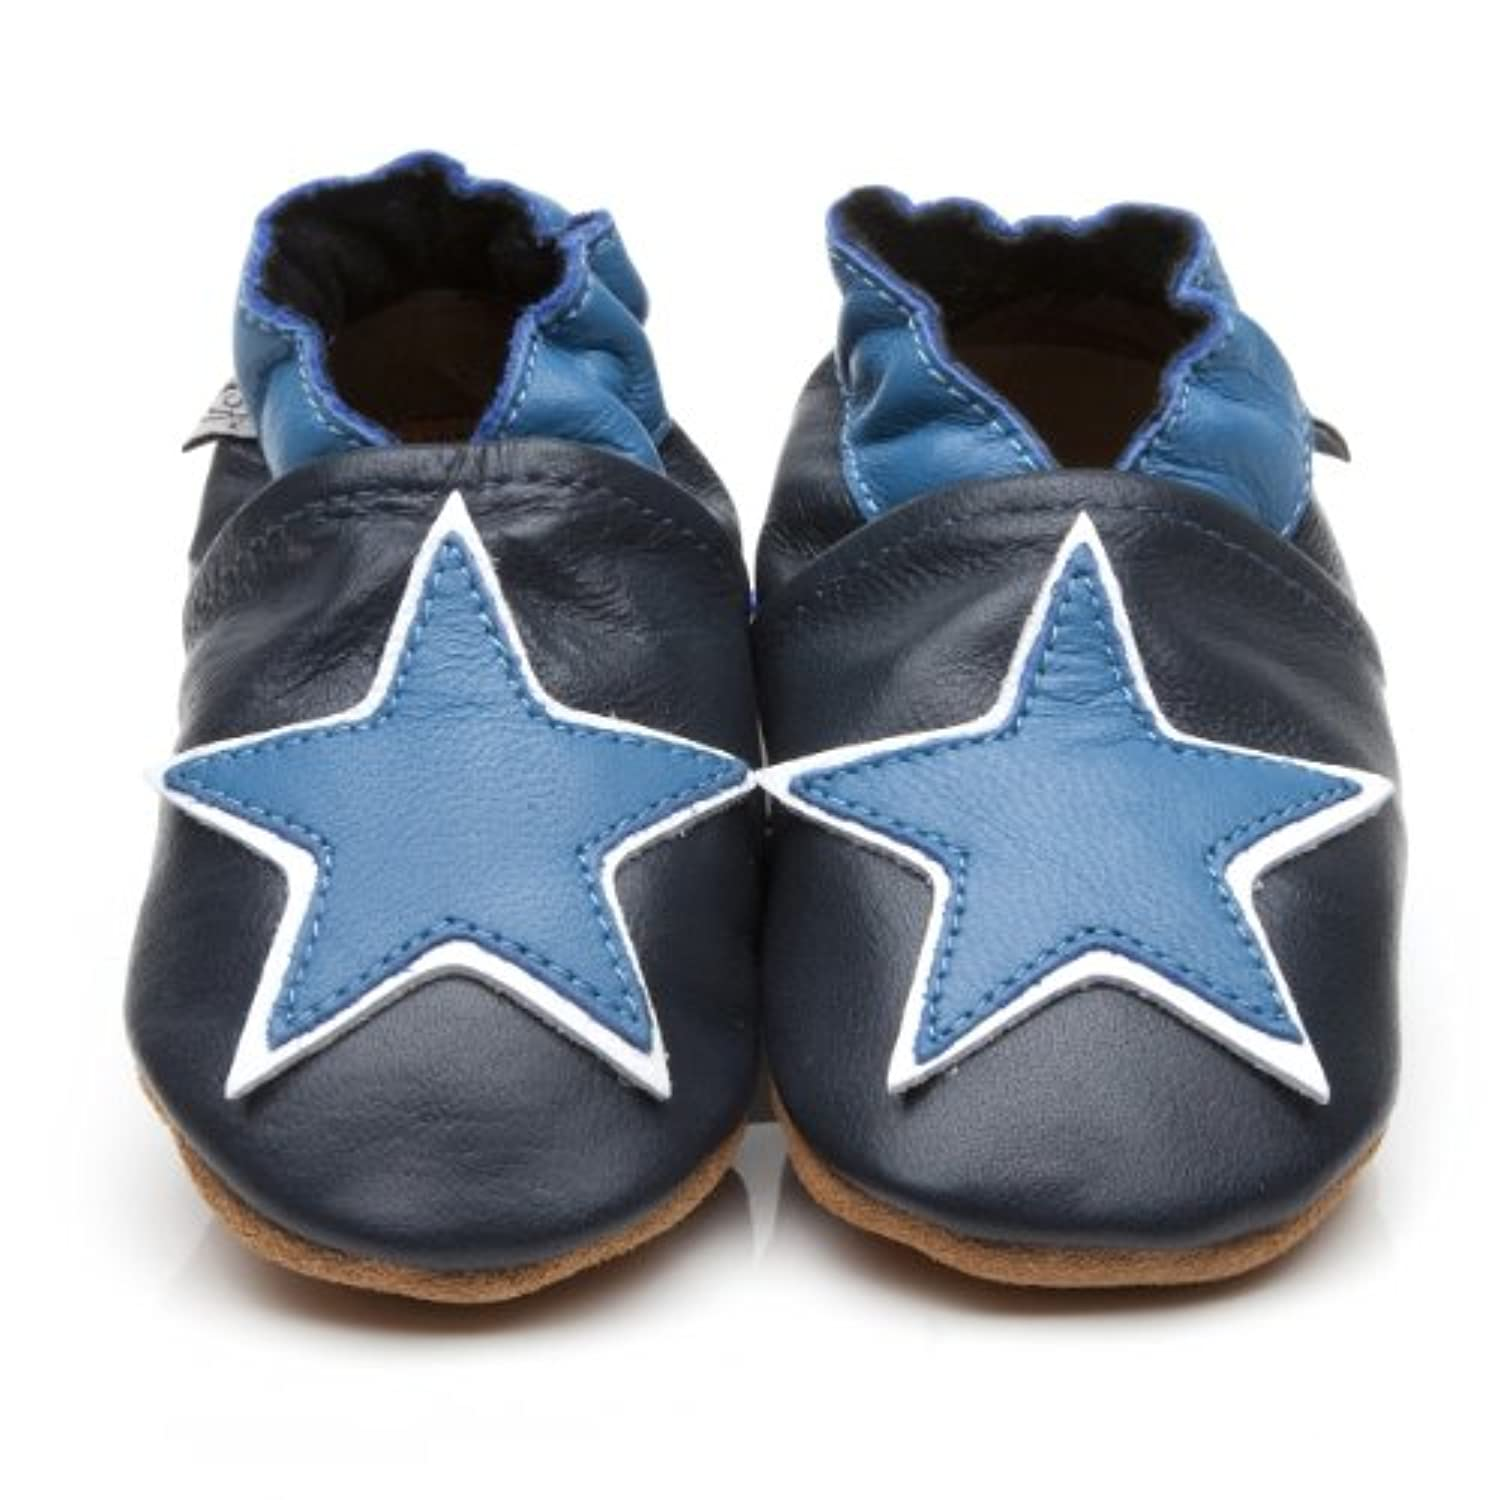 Soft Leather Baby Shoes Blue Star [ソフトレザーベビーシューズブルースター] 18-24 months (15 cm)